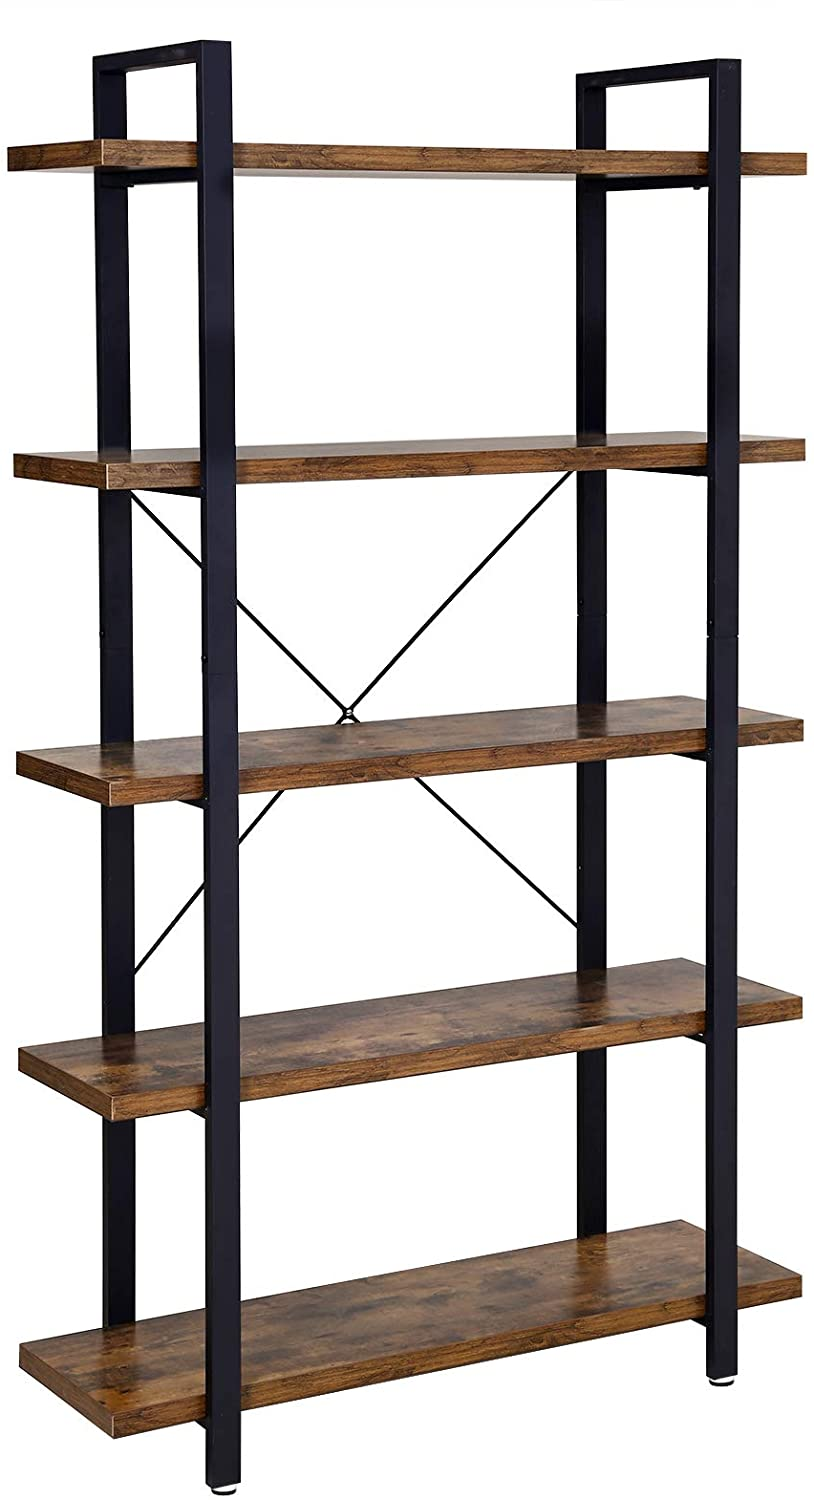 Enjoy fast, free nationwide shipping!  Owned by a husband and wife team of high-school music teachers, HawkinsWoodshop.com is your one stop shop for affordable furniture.  Shop HawkinsWoodshop.com for solid wood & metal modern, traditional, contemporary, industrial, custom, rustic, and farmhouse furniture including our 5 Tier Industrial Bookshelf.